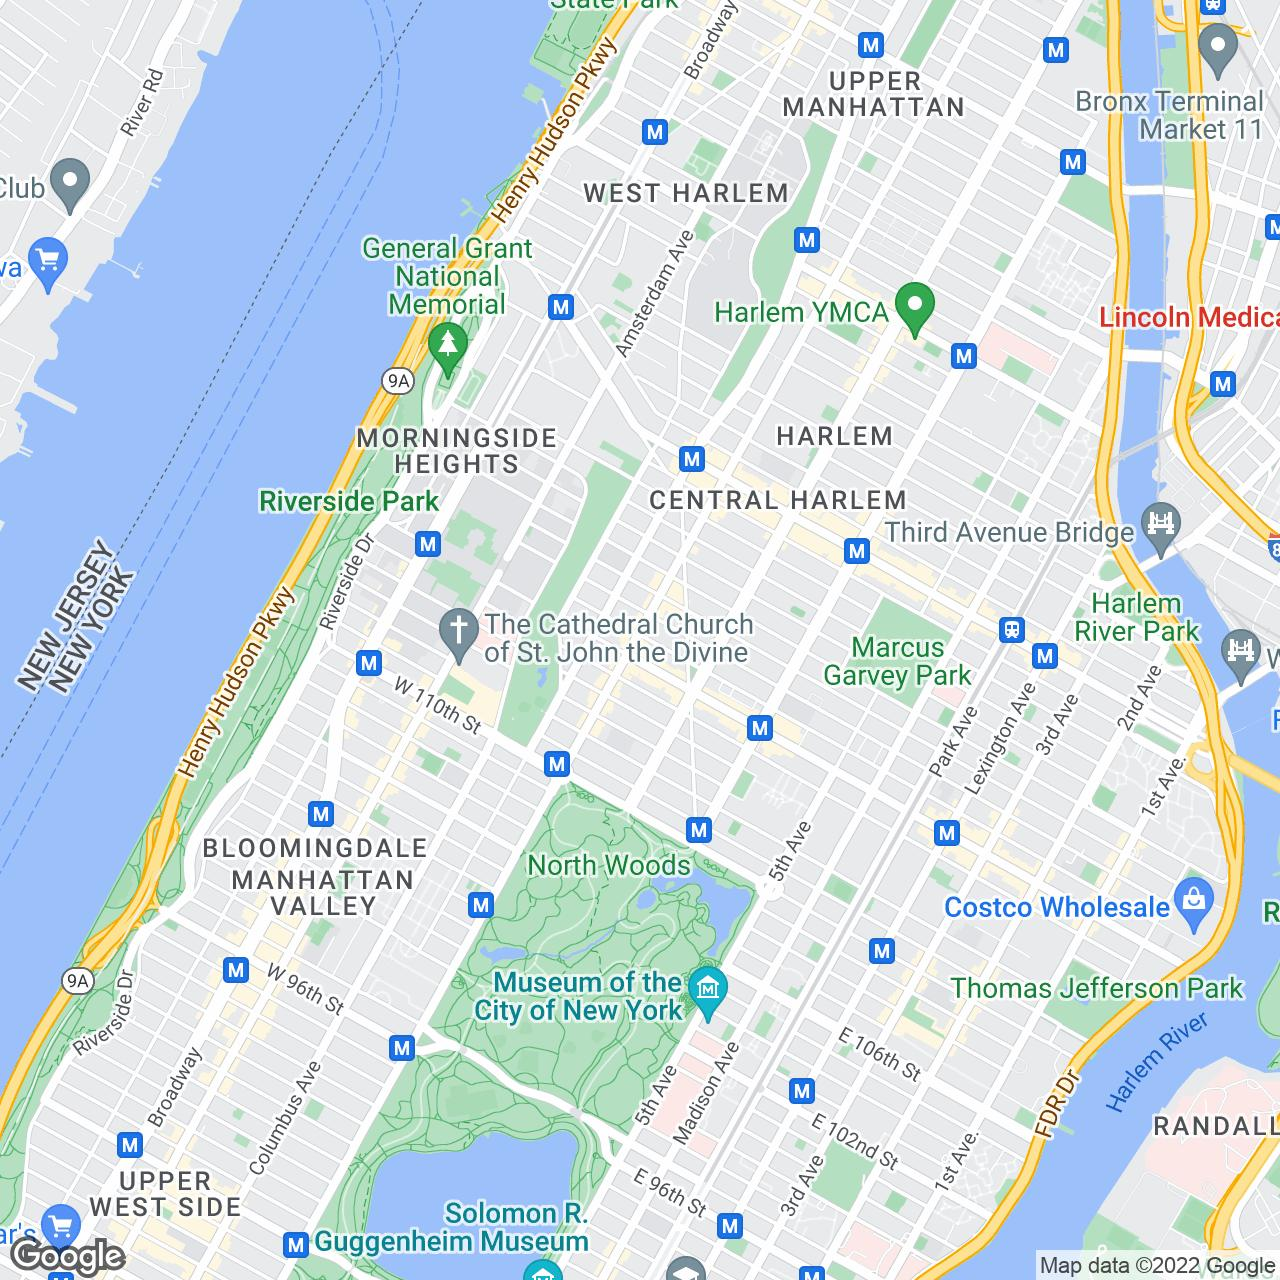 The Best Things to Do in Harlem NYC Your UptoDate Guide